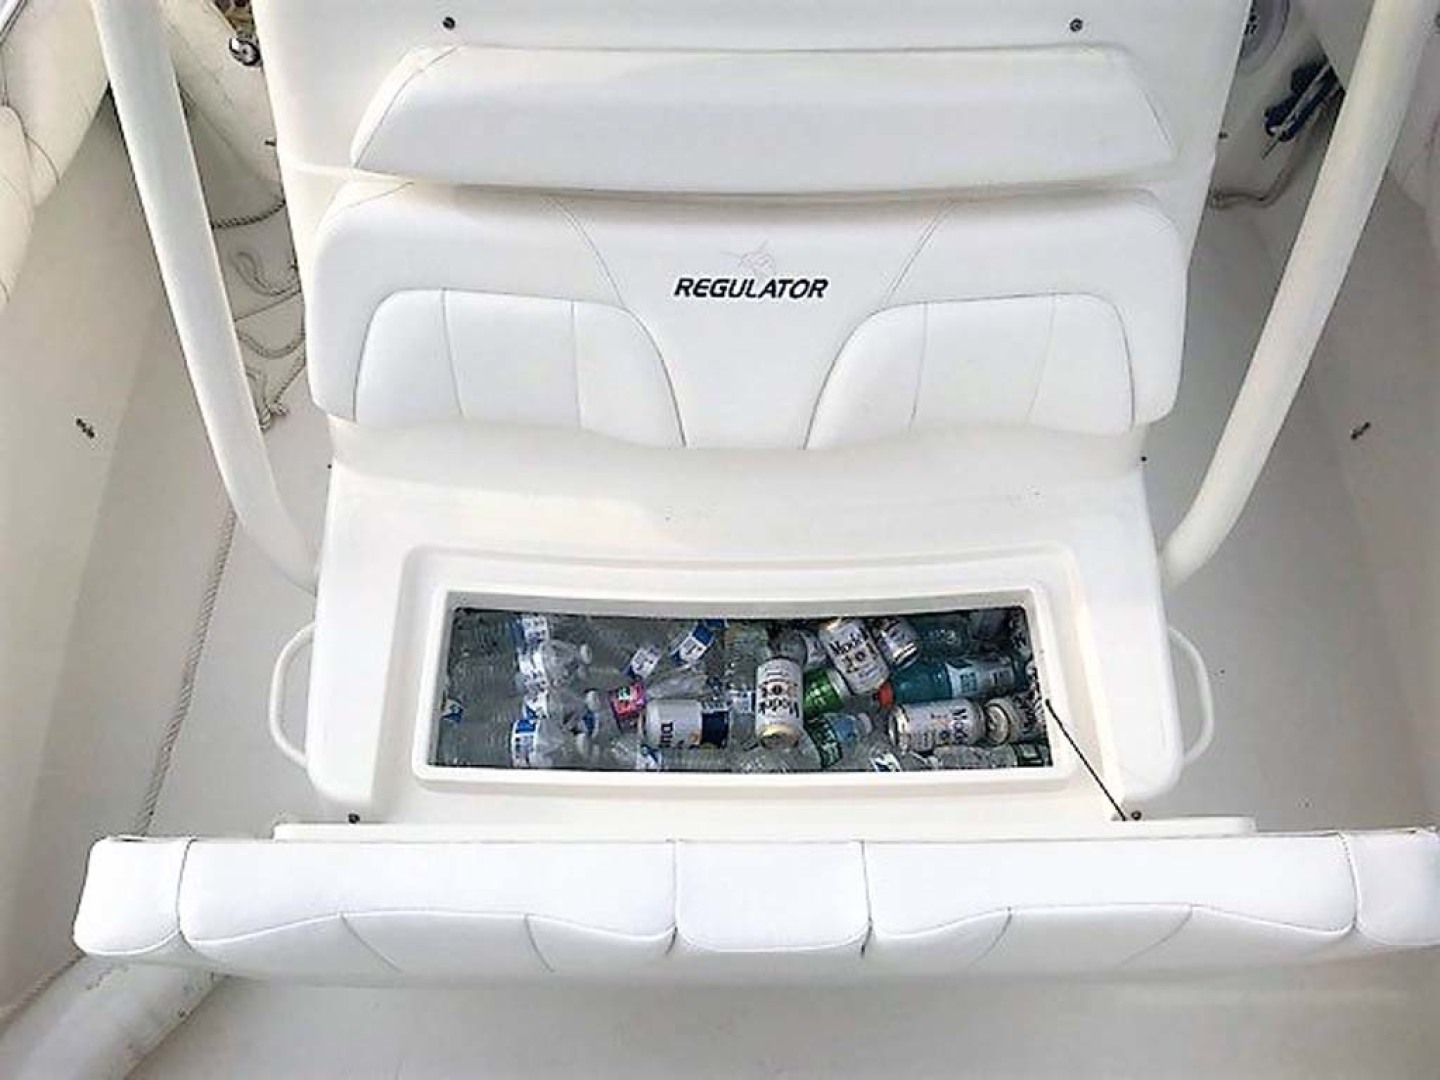 Regulator-28 FS Center Console 2014 -Mamaroneck-New York-United States-Console Cooler-1089409 | Thumbnail